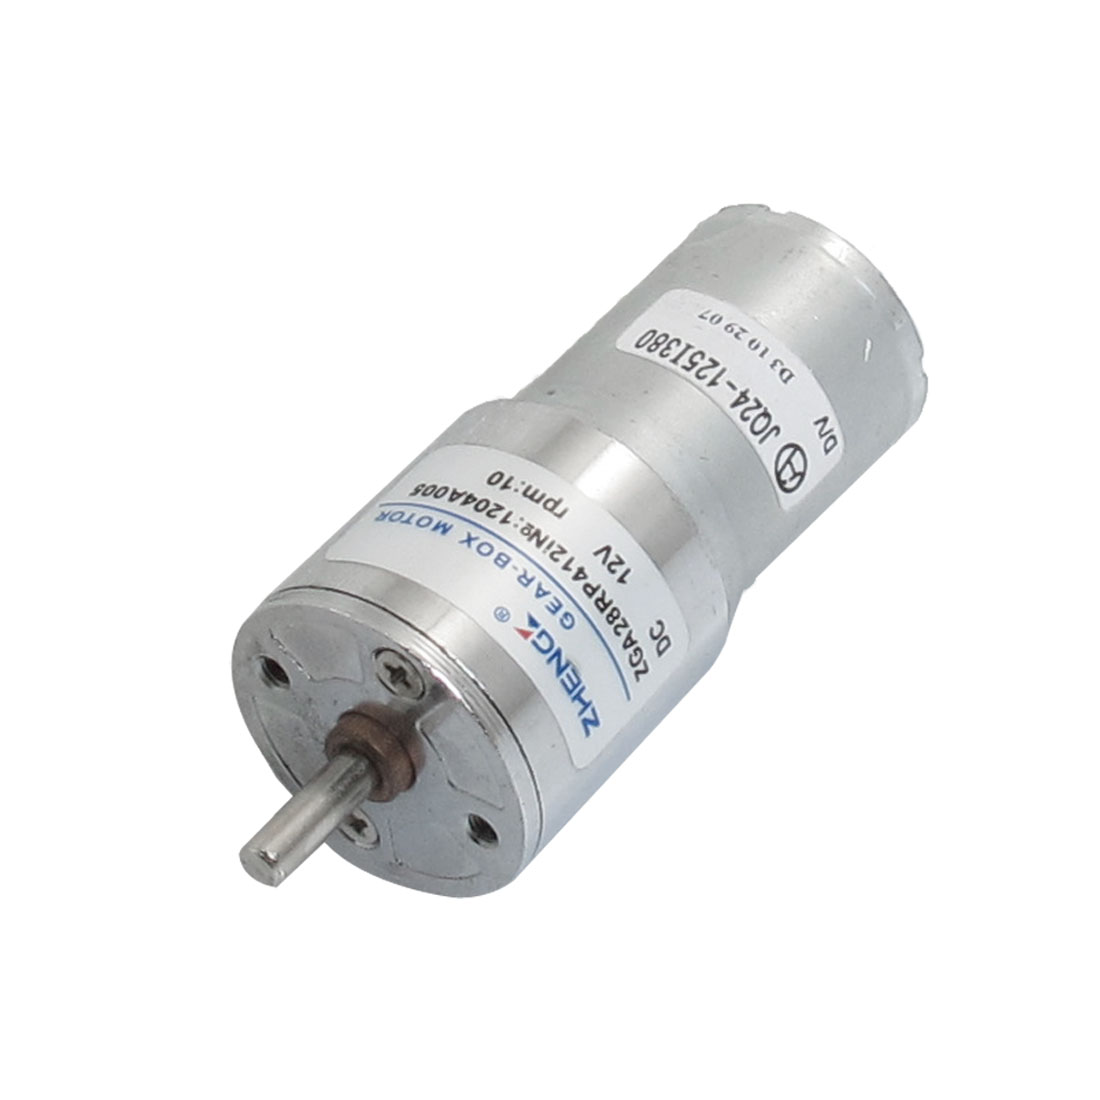 28mm Body Diameter Two Terminals Power Oven Geared Motor 12VDC 10RPM